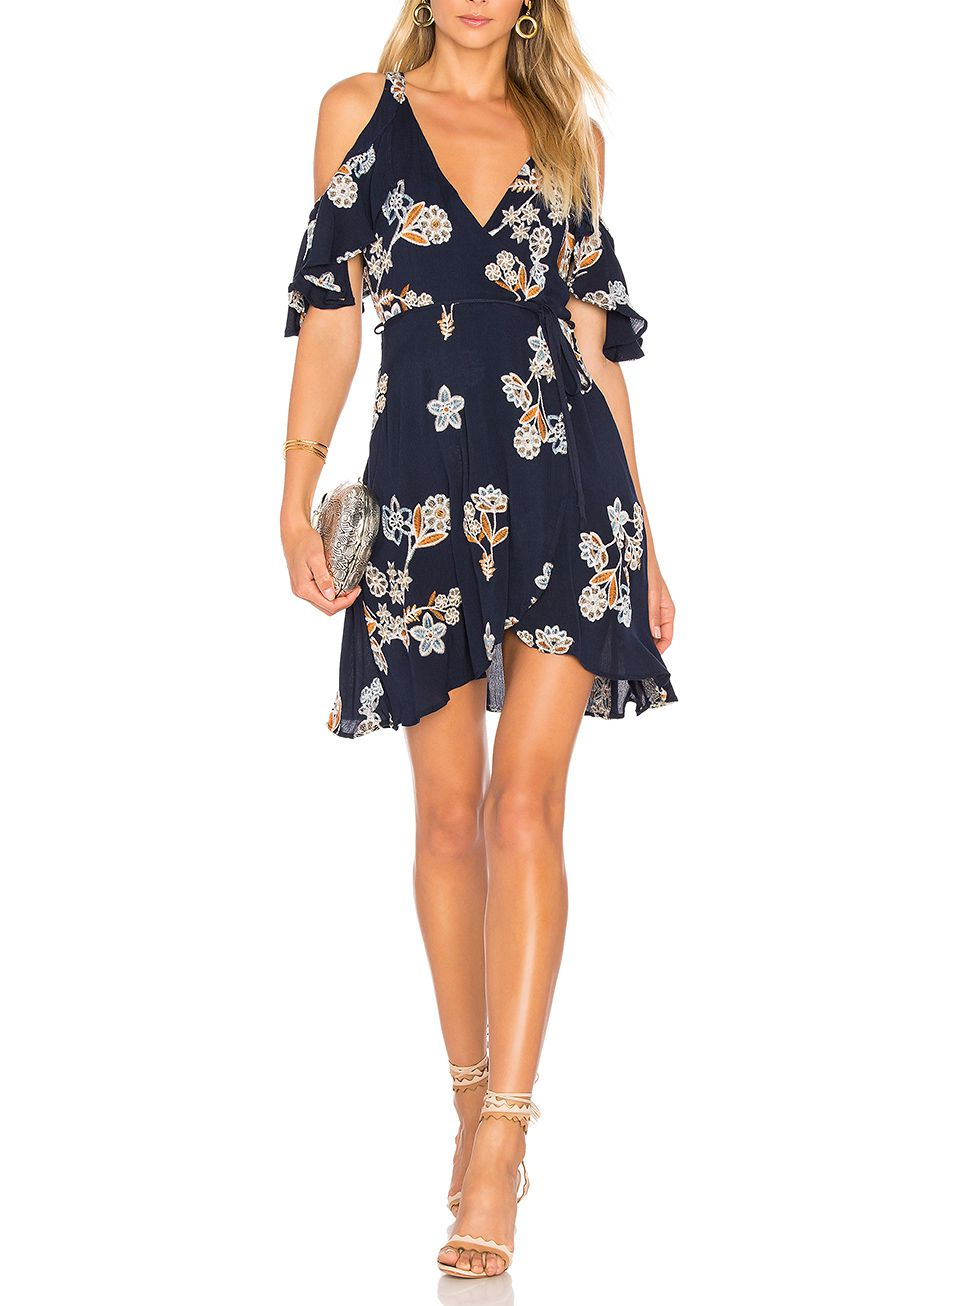 A model wearing a casual floral dress